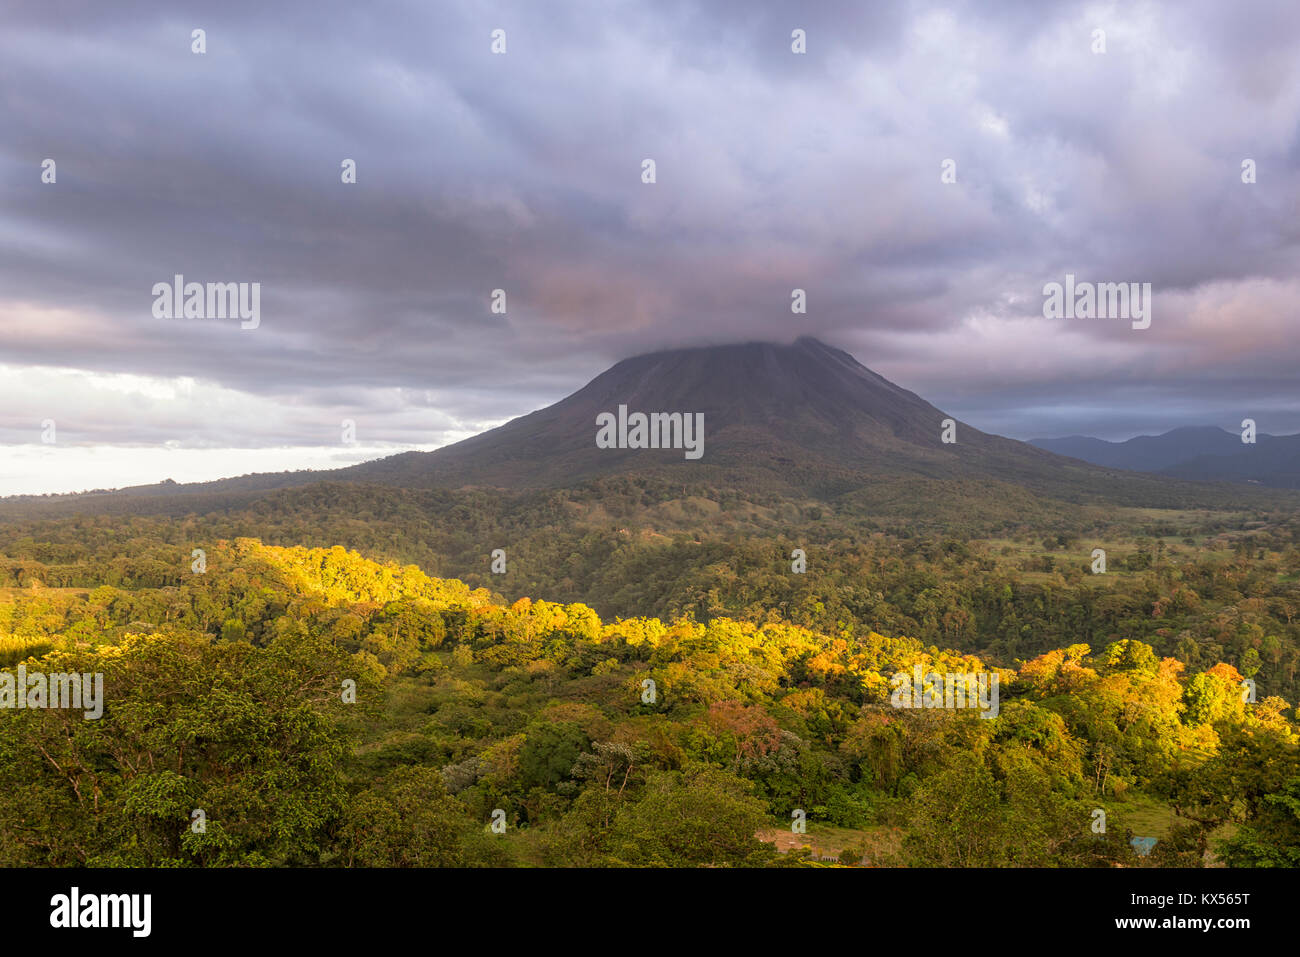 Volcano Arenal in clouds, Arenal Volcano National Park, Alajuela province, Costa Rica - Stock Image